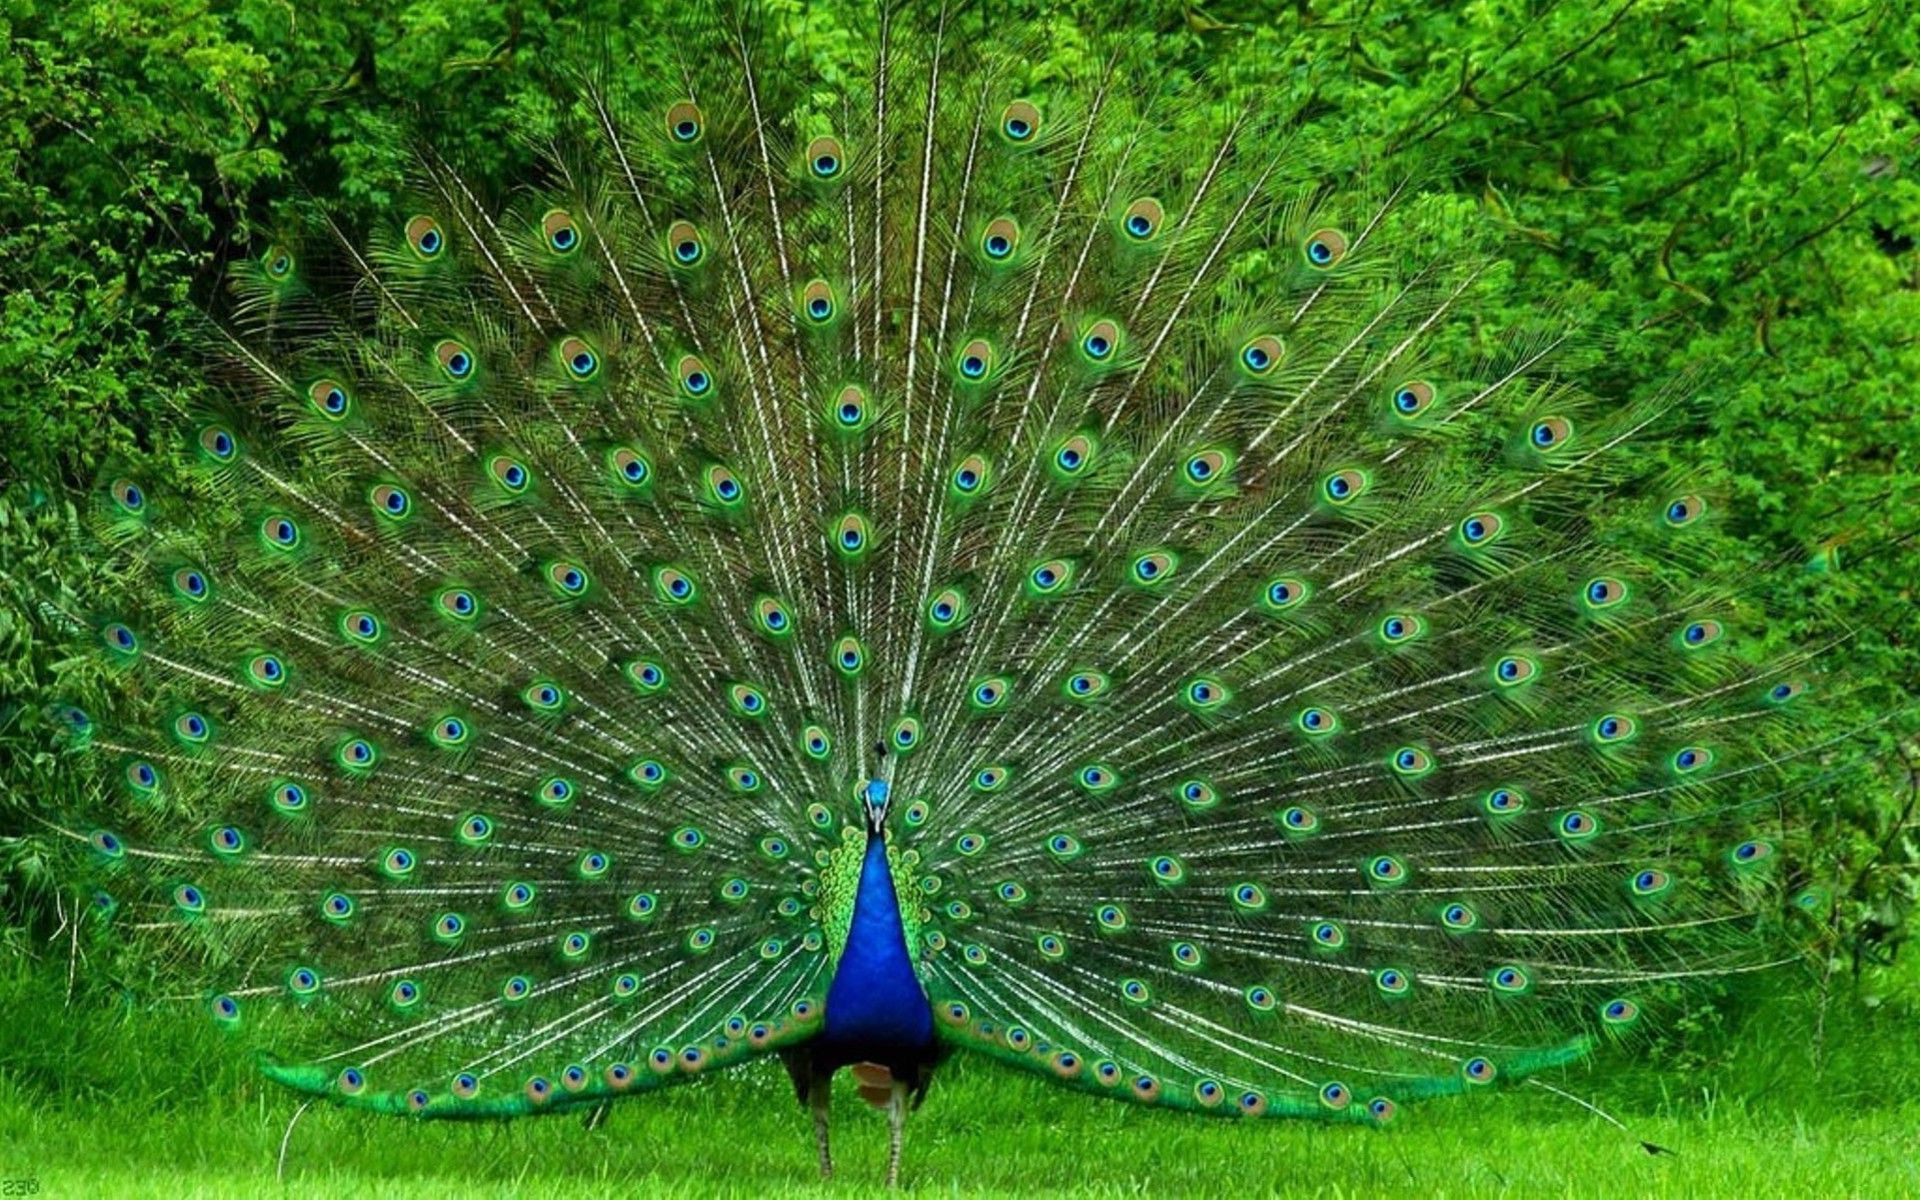 beautiful pictures of peacocks | pinterest | peacocks, bird and animal